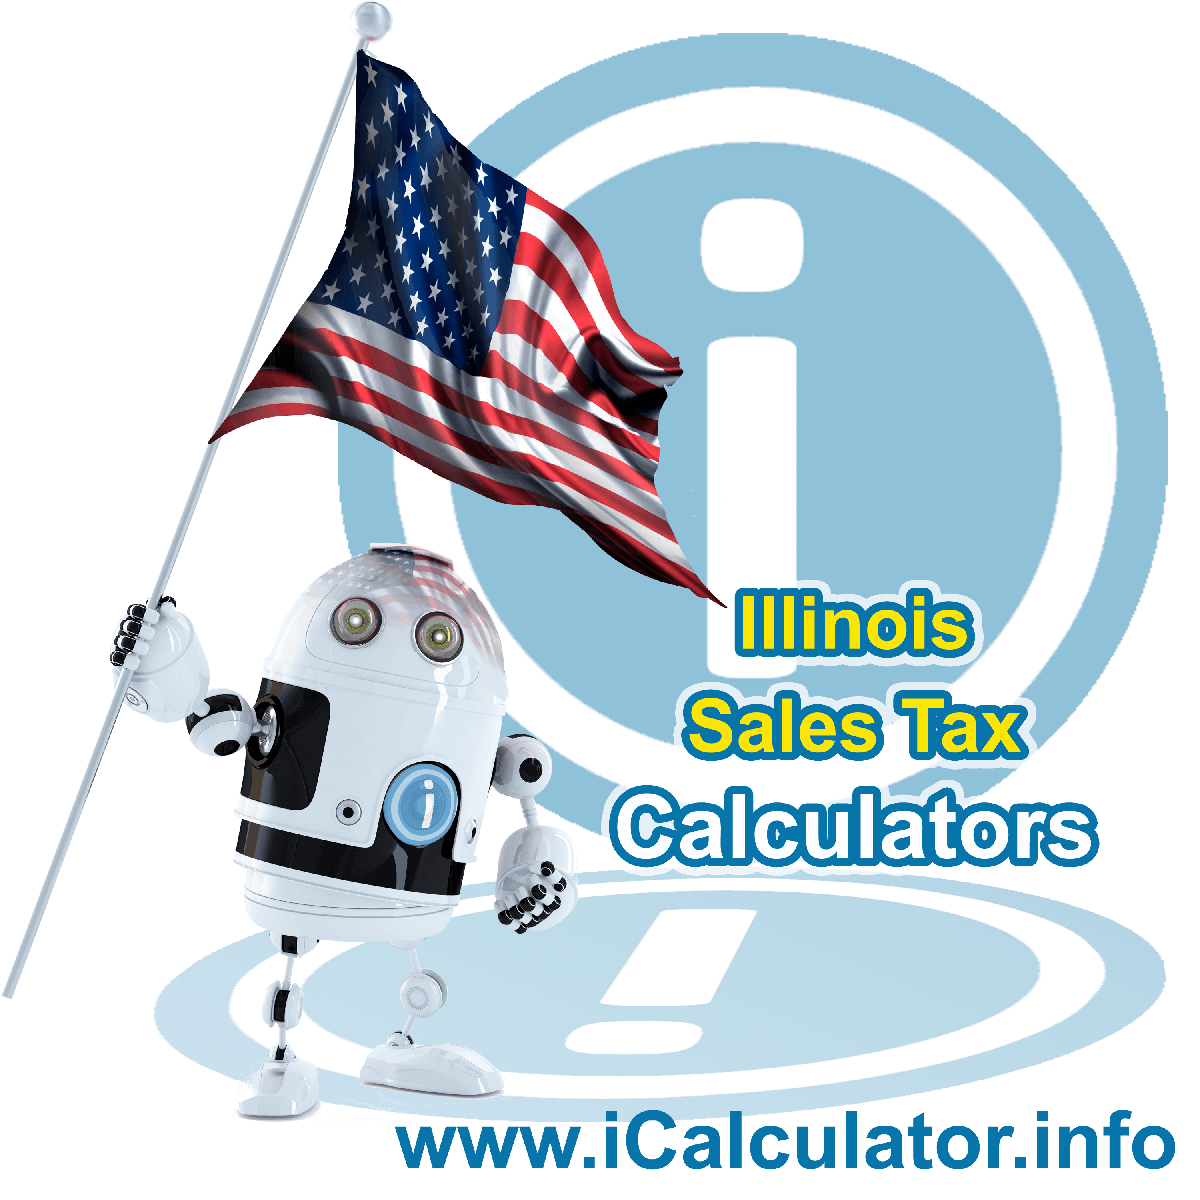 Will County Sales Rates: This image illustrates a calculator robot calculating Will County sales tax manually using the Will County Sales Tax Formula. You can use this information to calculate Will County Sales Tax manually or use the Will County Sales Tax Calculator to calculate sales tax online.